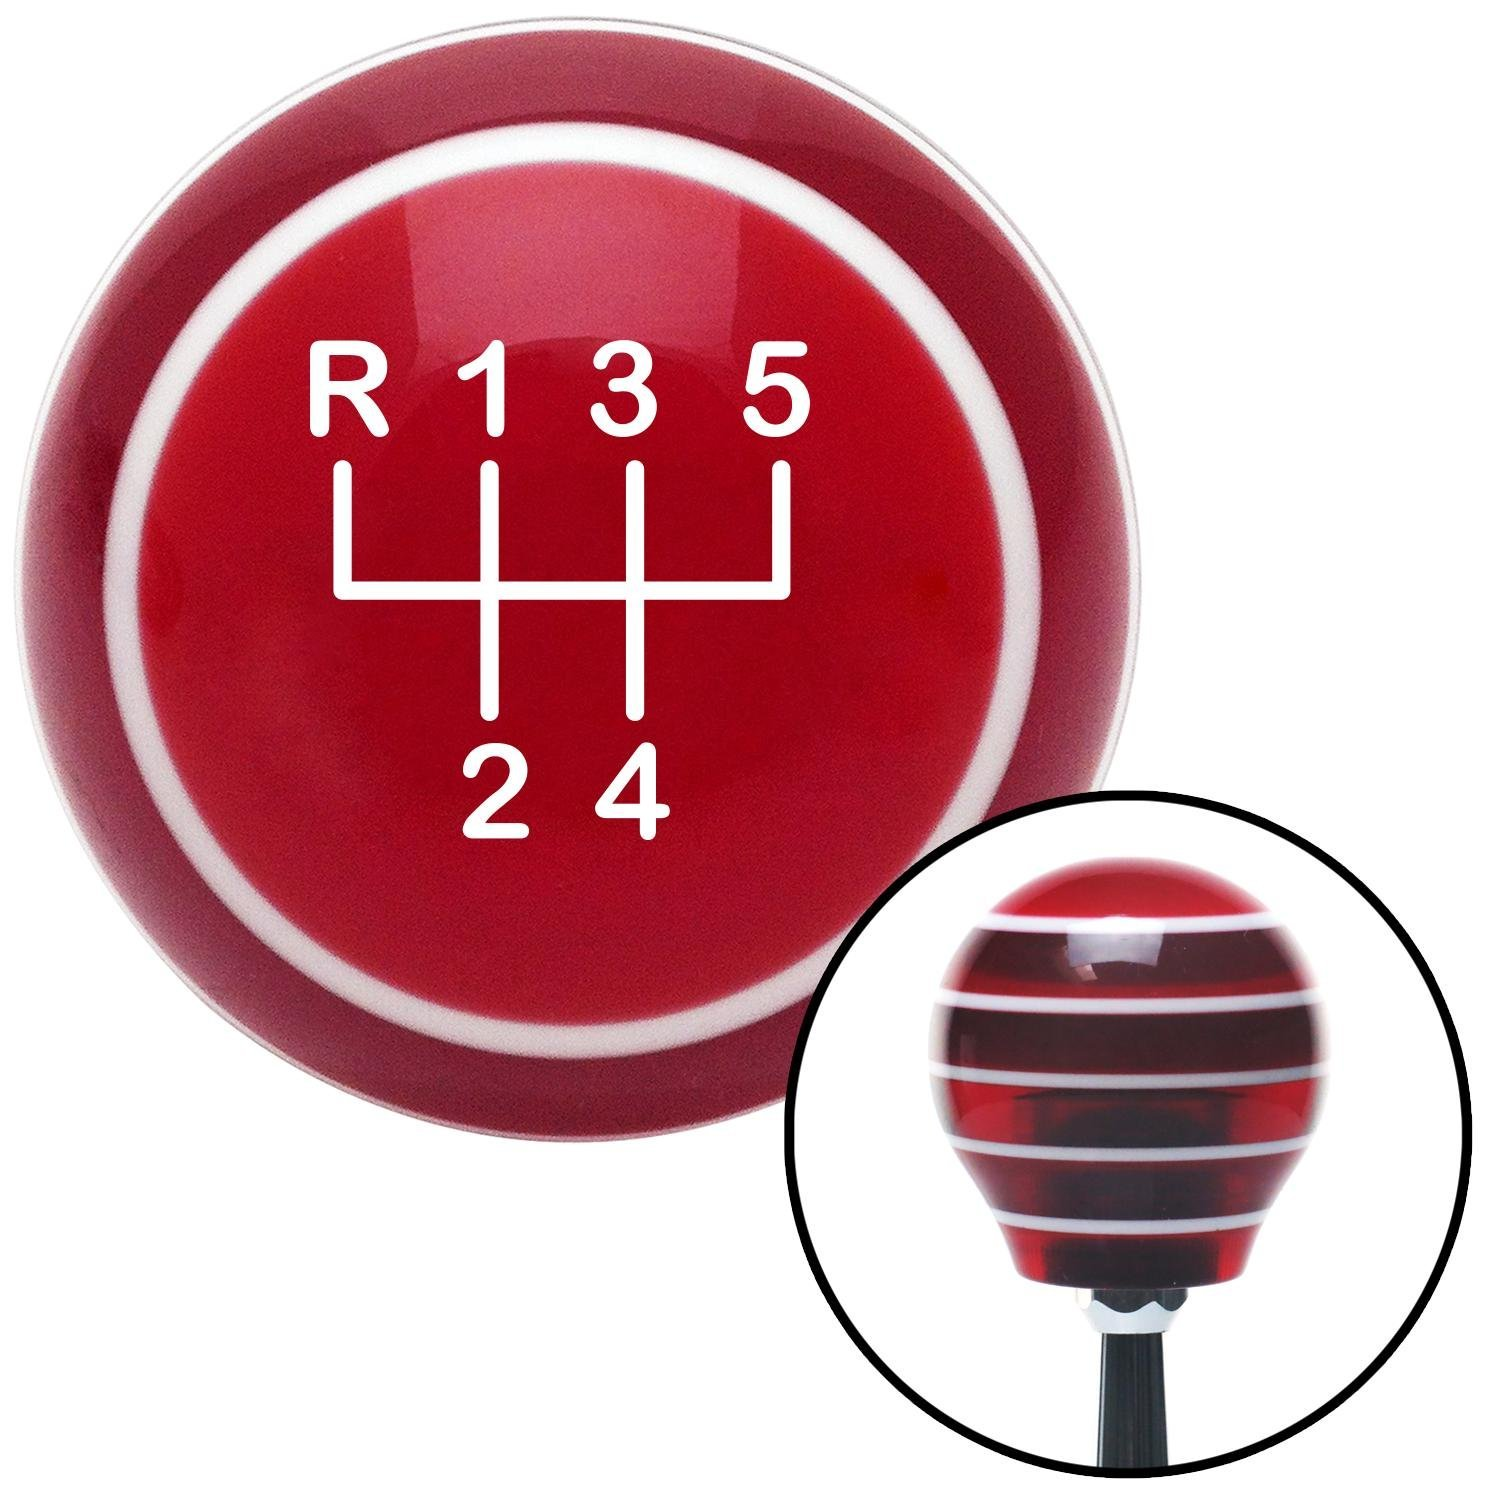 American Shifter 117558 Red Stripe Shift Knob with M16 x 1.5 Insert White Shift Pattern 18n